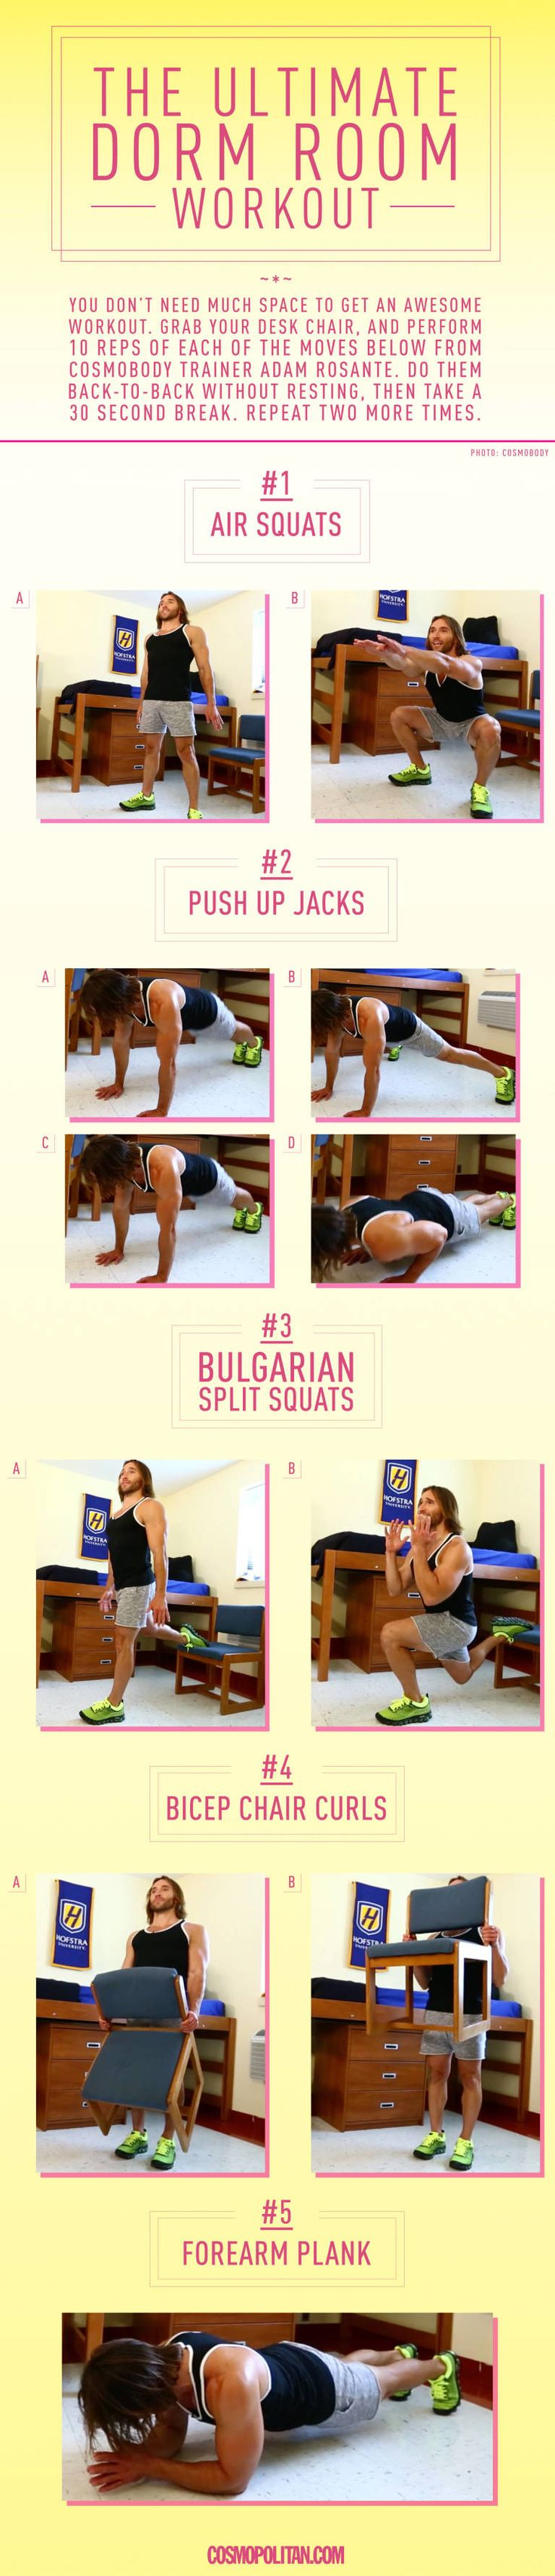 5 Exercise Moves You Can Do in Your Dorm Room | Cosmopolitan